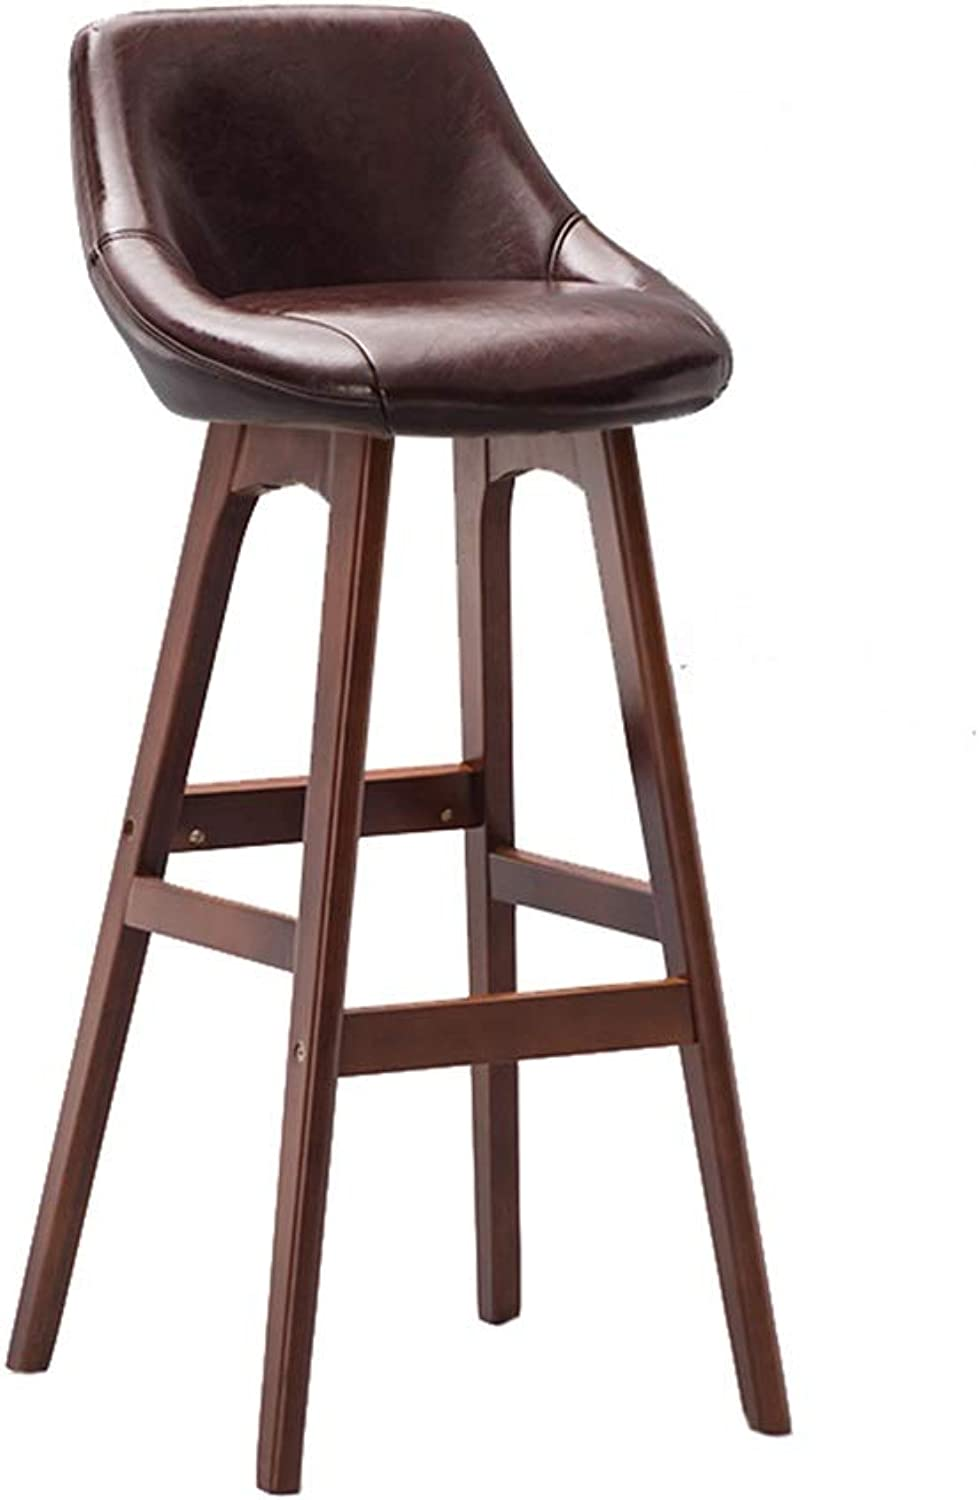 Wooden Brown Barstool High Stool Breakfast Dining Stool for Kitchen Home Bar Counter Commercial Chair with Backrest and Brown PU Cushion Concise Style - Height 79.5cm